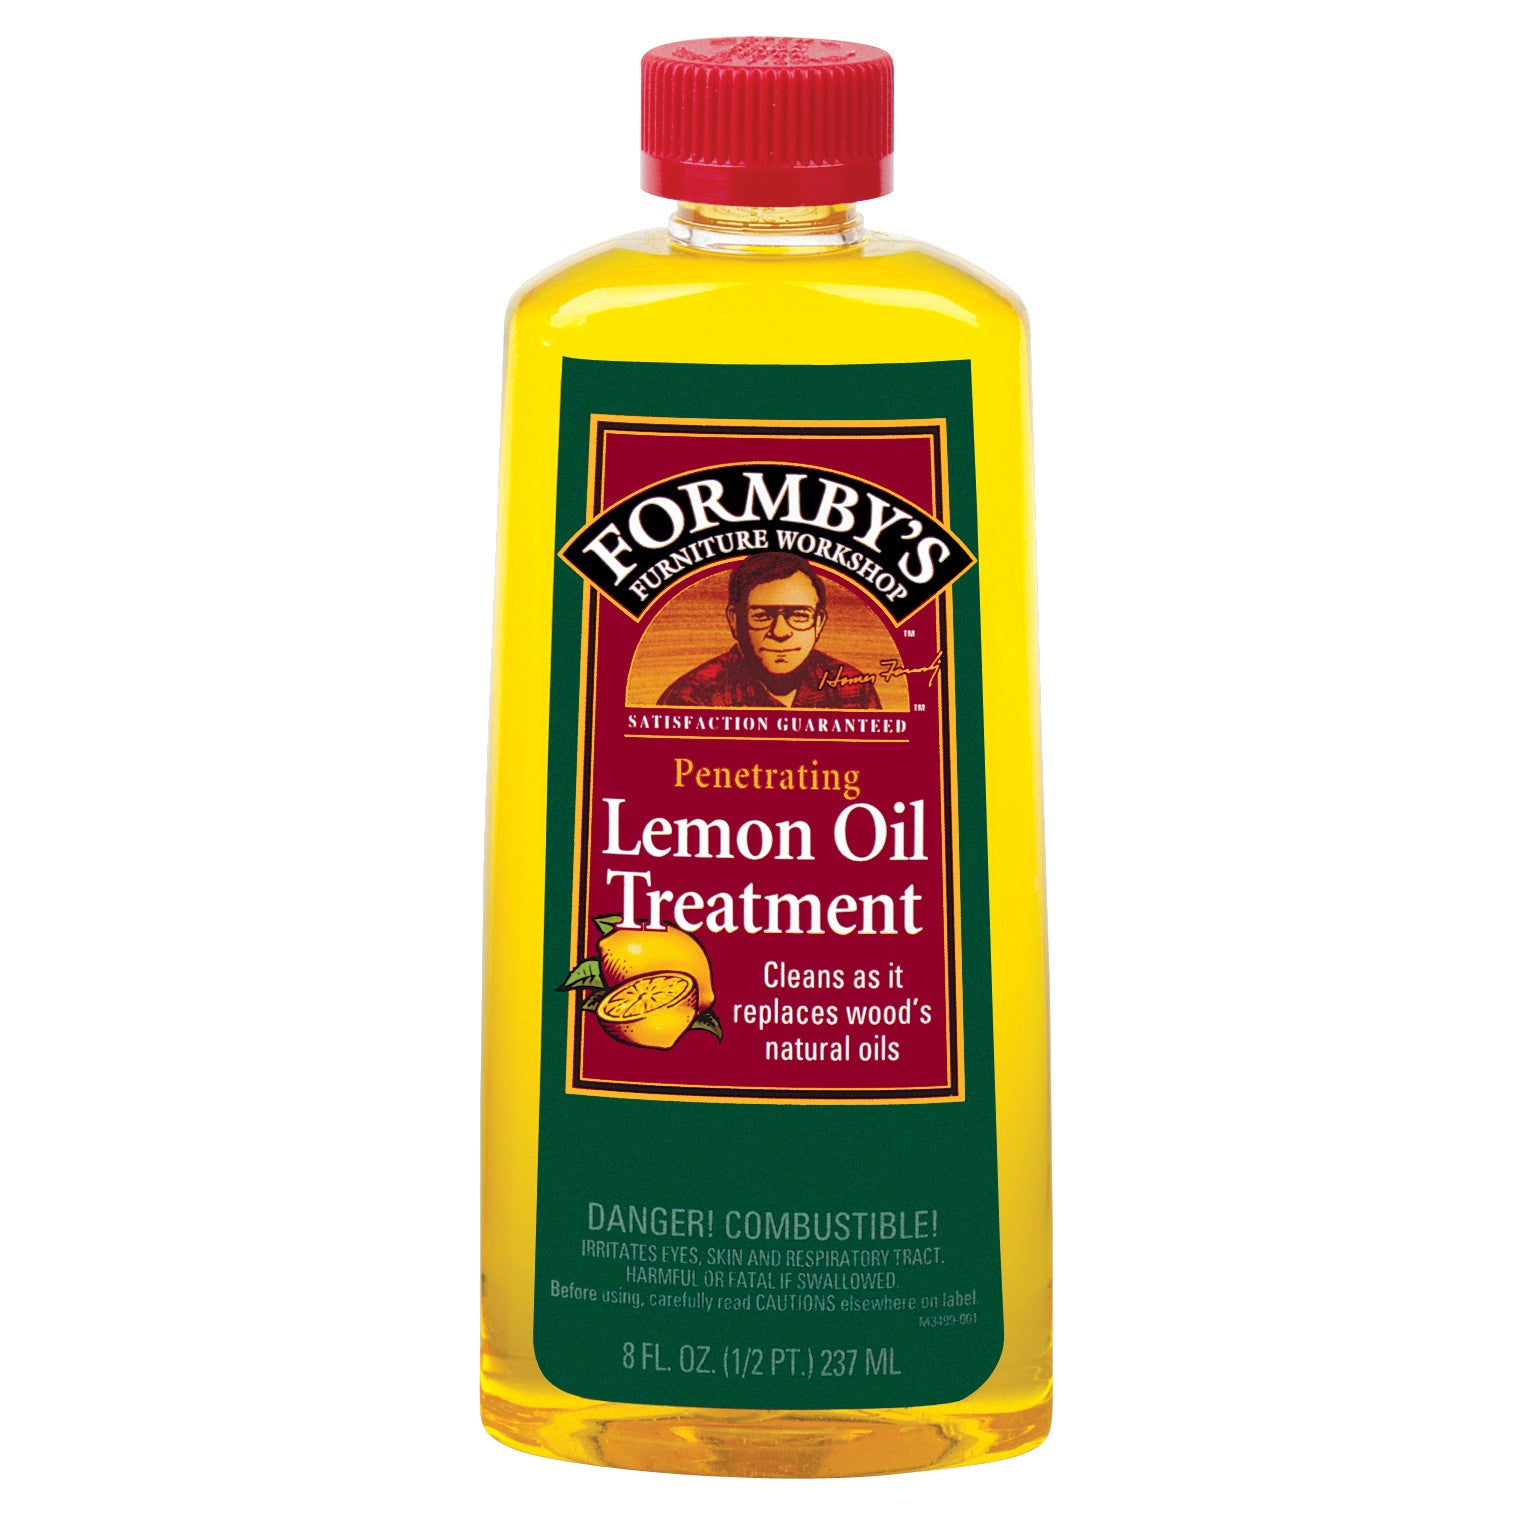 Formbys 30015 8 Oz Lemon (Yellow) Oil Furniture Treatment...